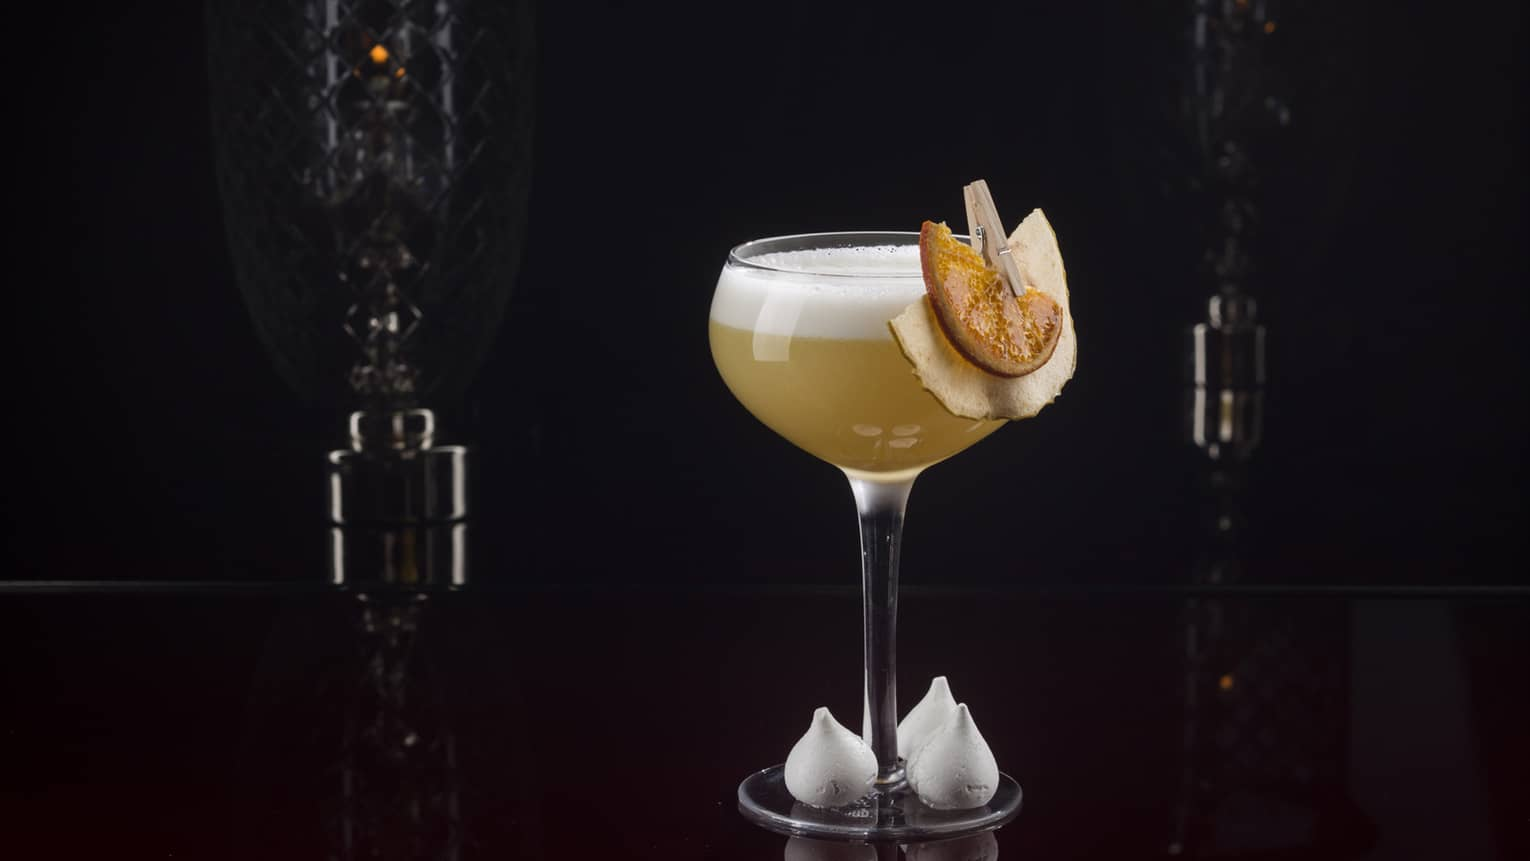 Cocktail glass with lemon garnishes against a black backdrop